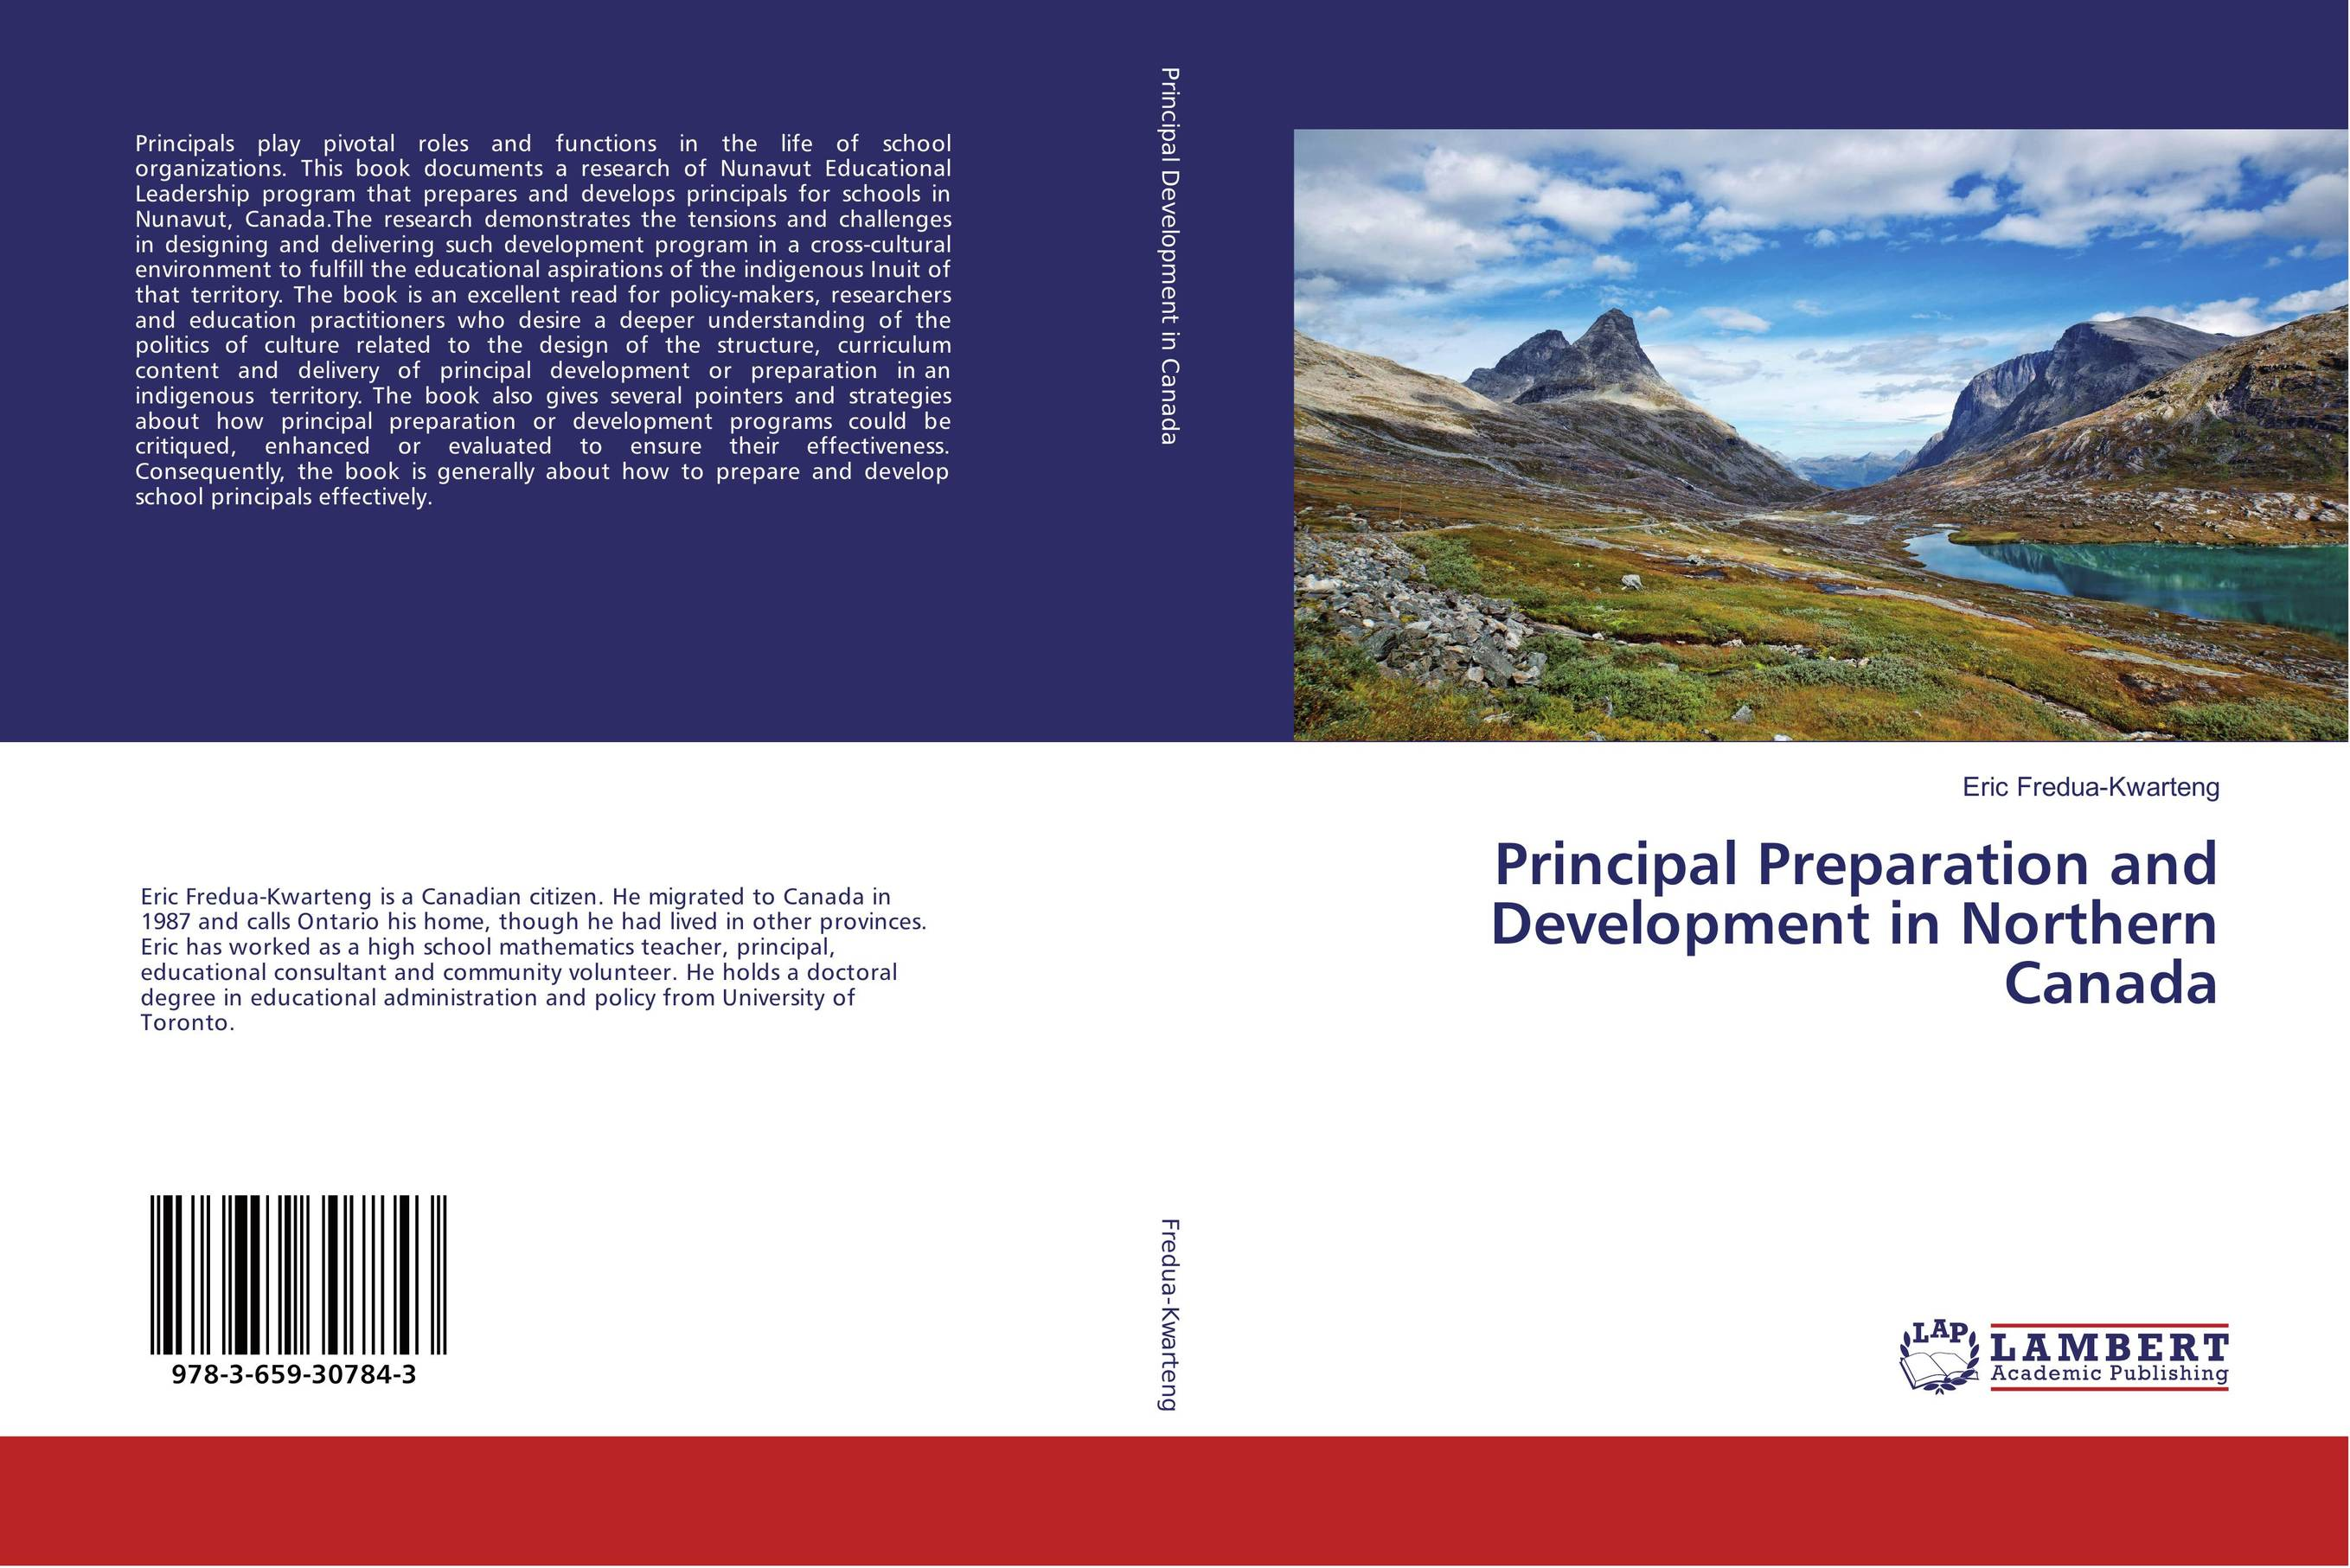 the principles underpinning development and preparation To successful policy development is to identify who needs to be involved in the  • government ideology/principles or aims to factor into the policy development.